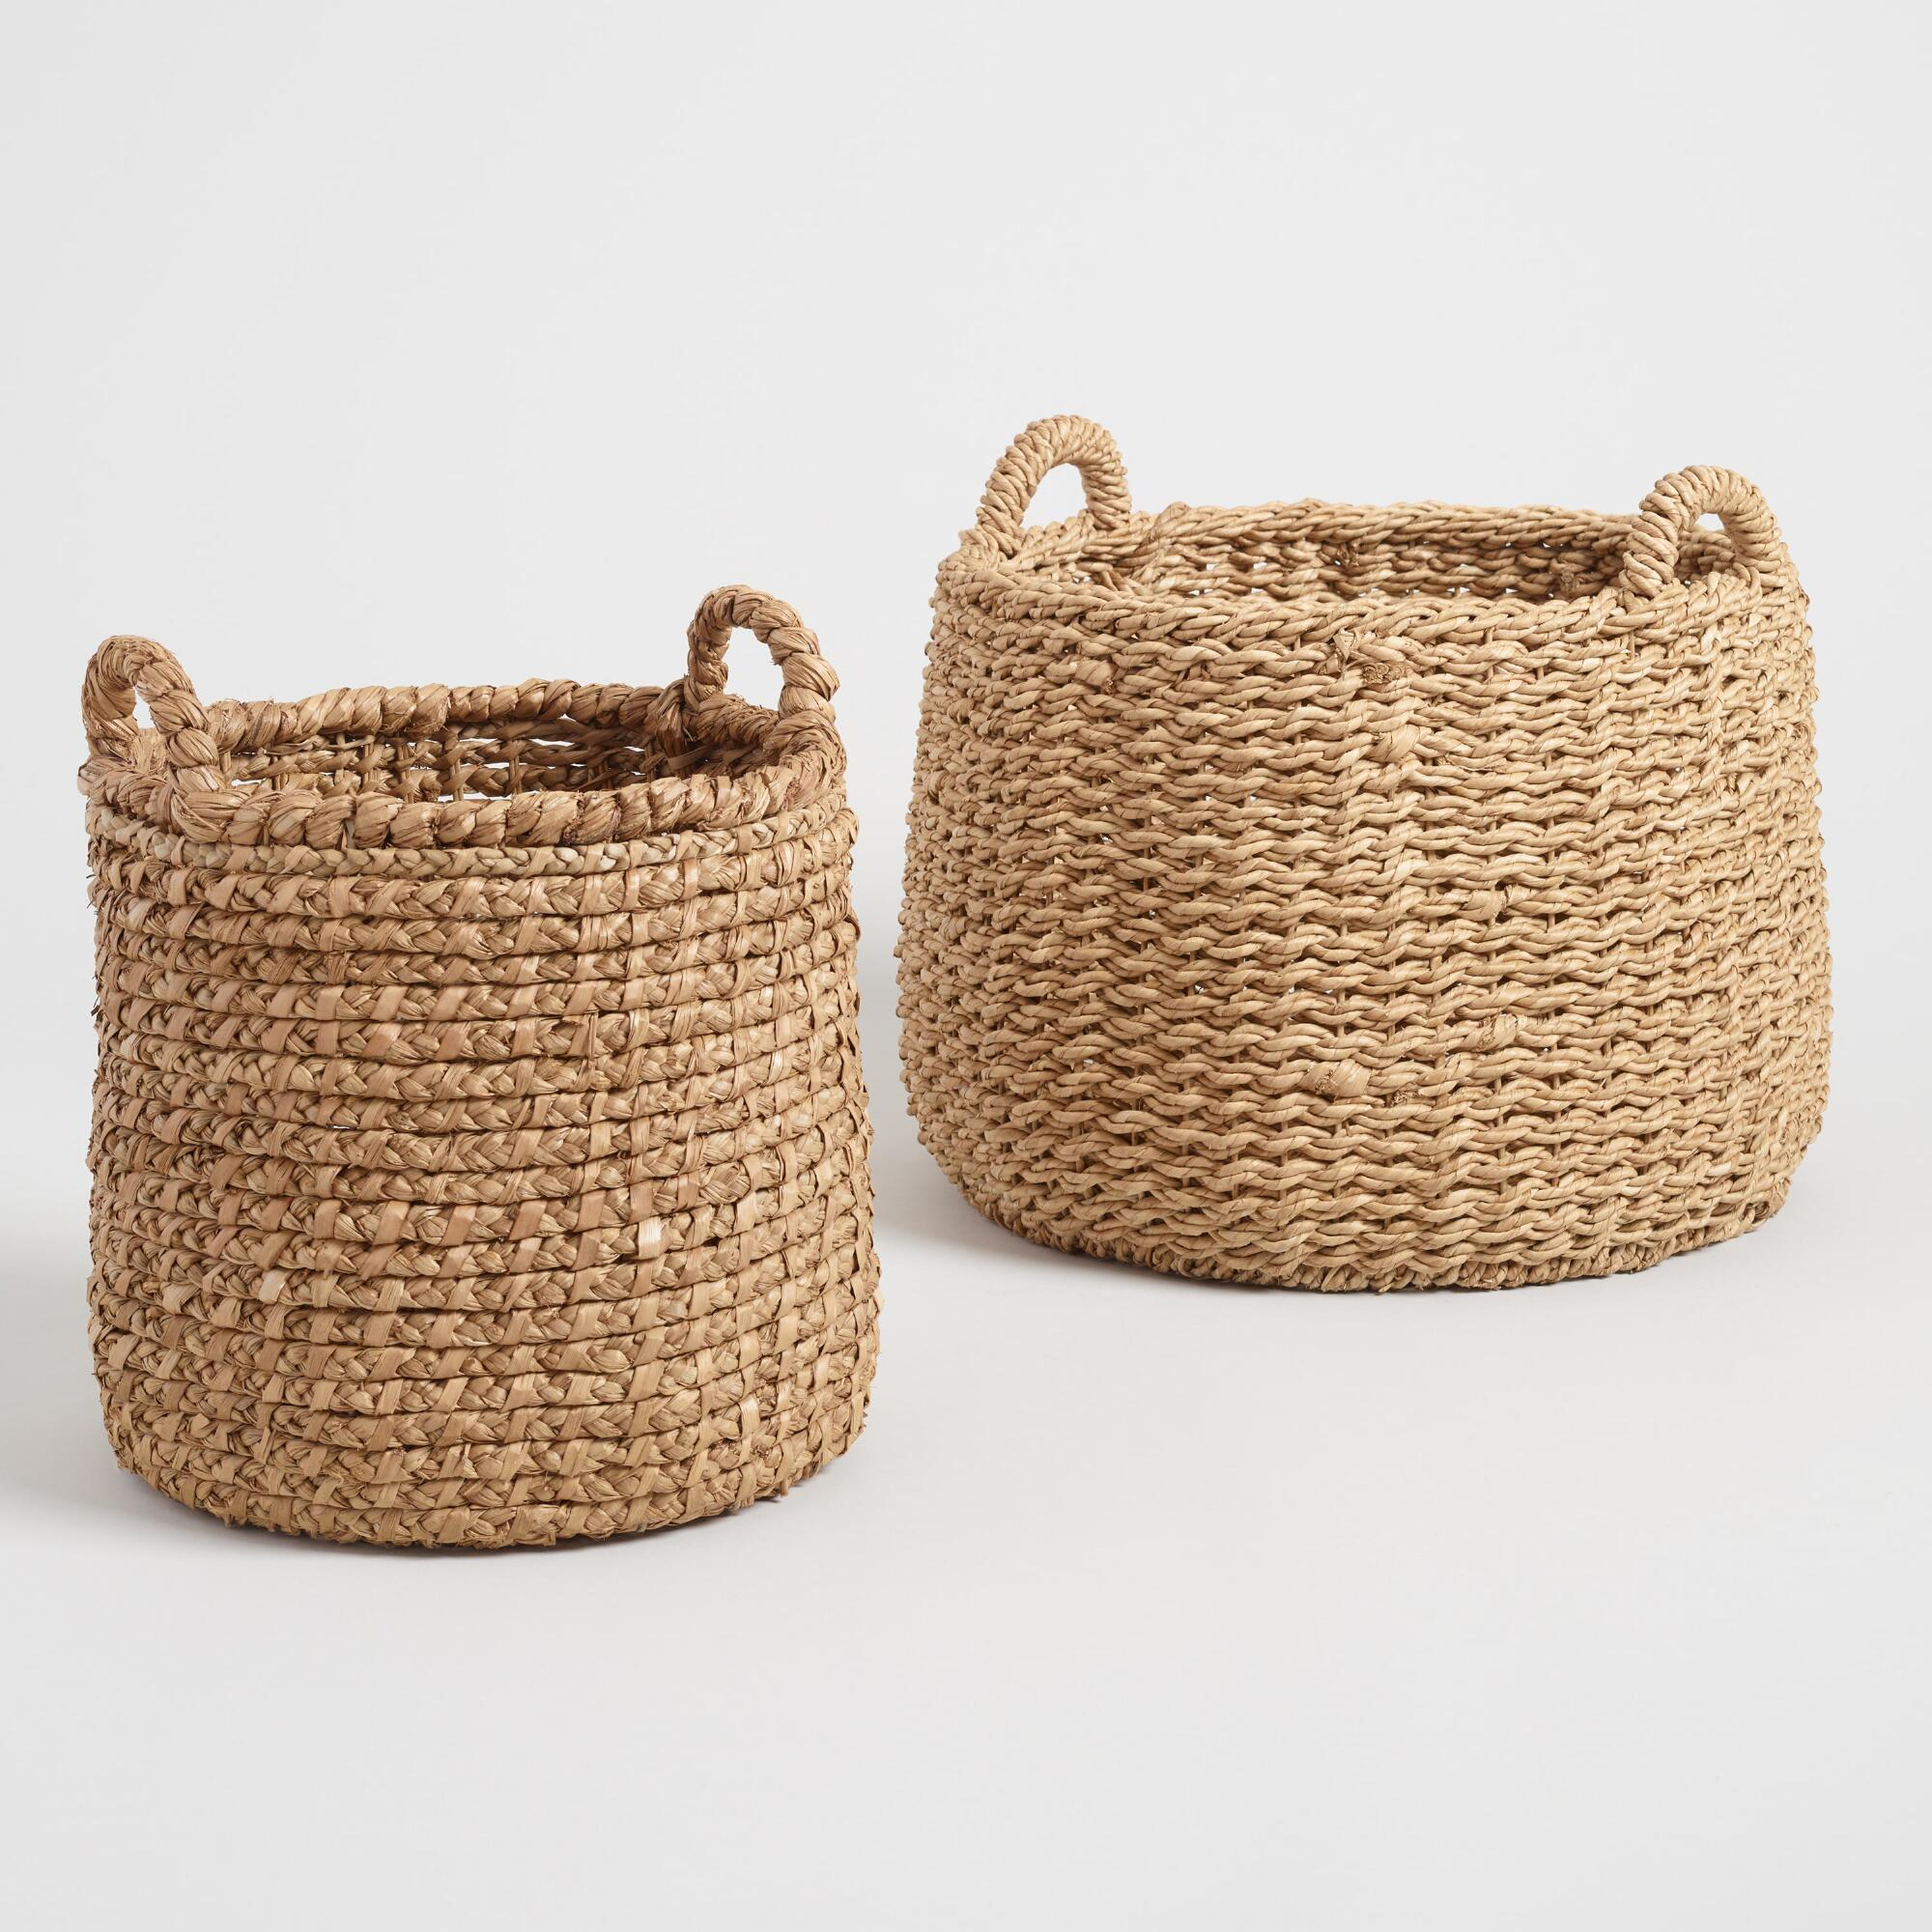 Natural Hyacinth Noelle Tote Baskets - Medium by World Market Medium